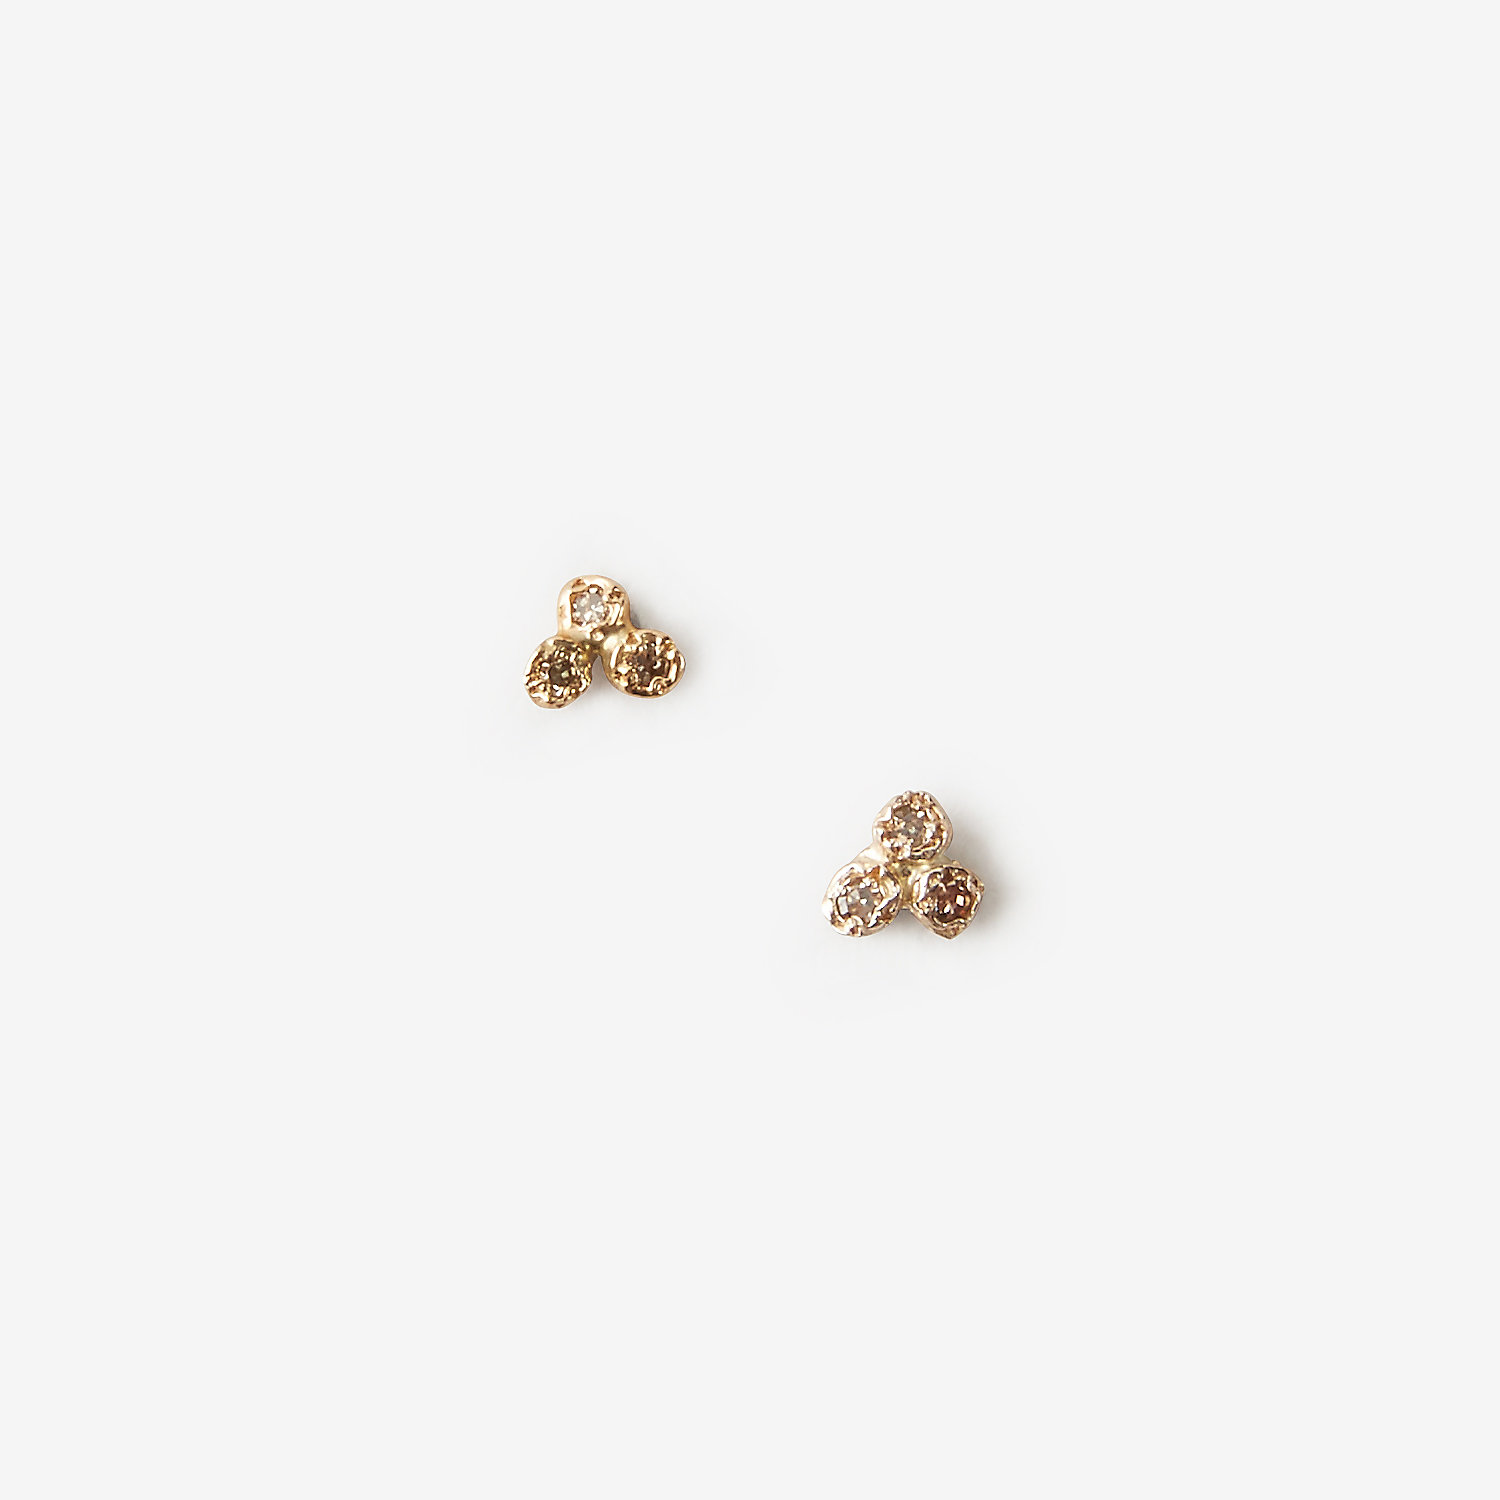 6 DIAMOND CLUSTER EARRINGS